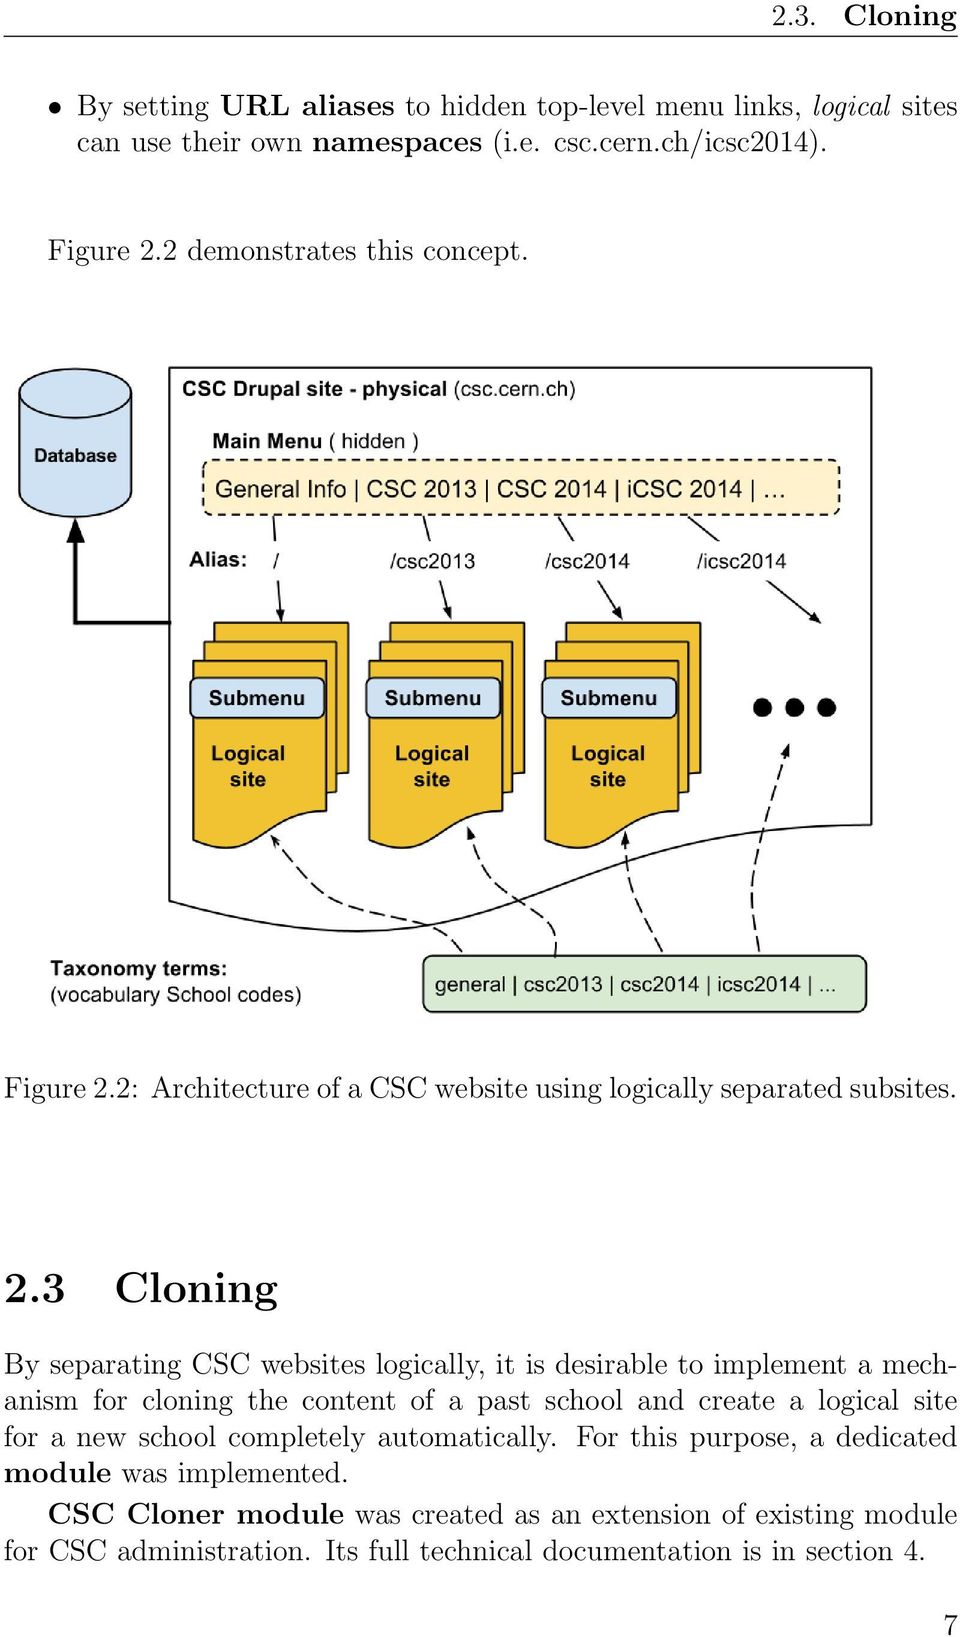 2: Architecture of a CSC website using logically separated subsites. 2.